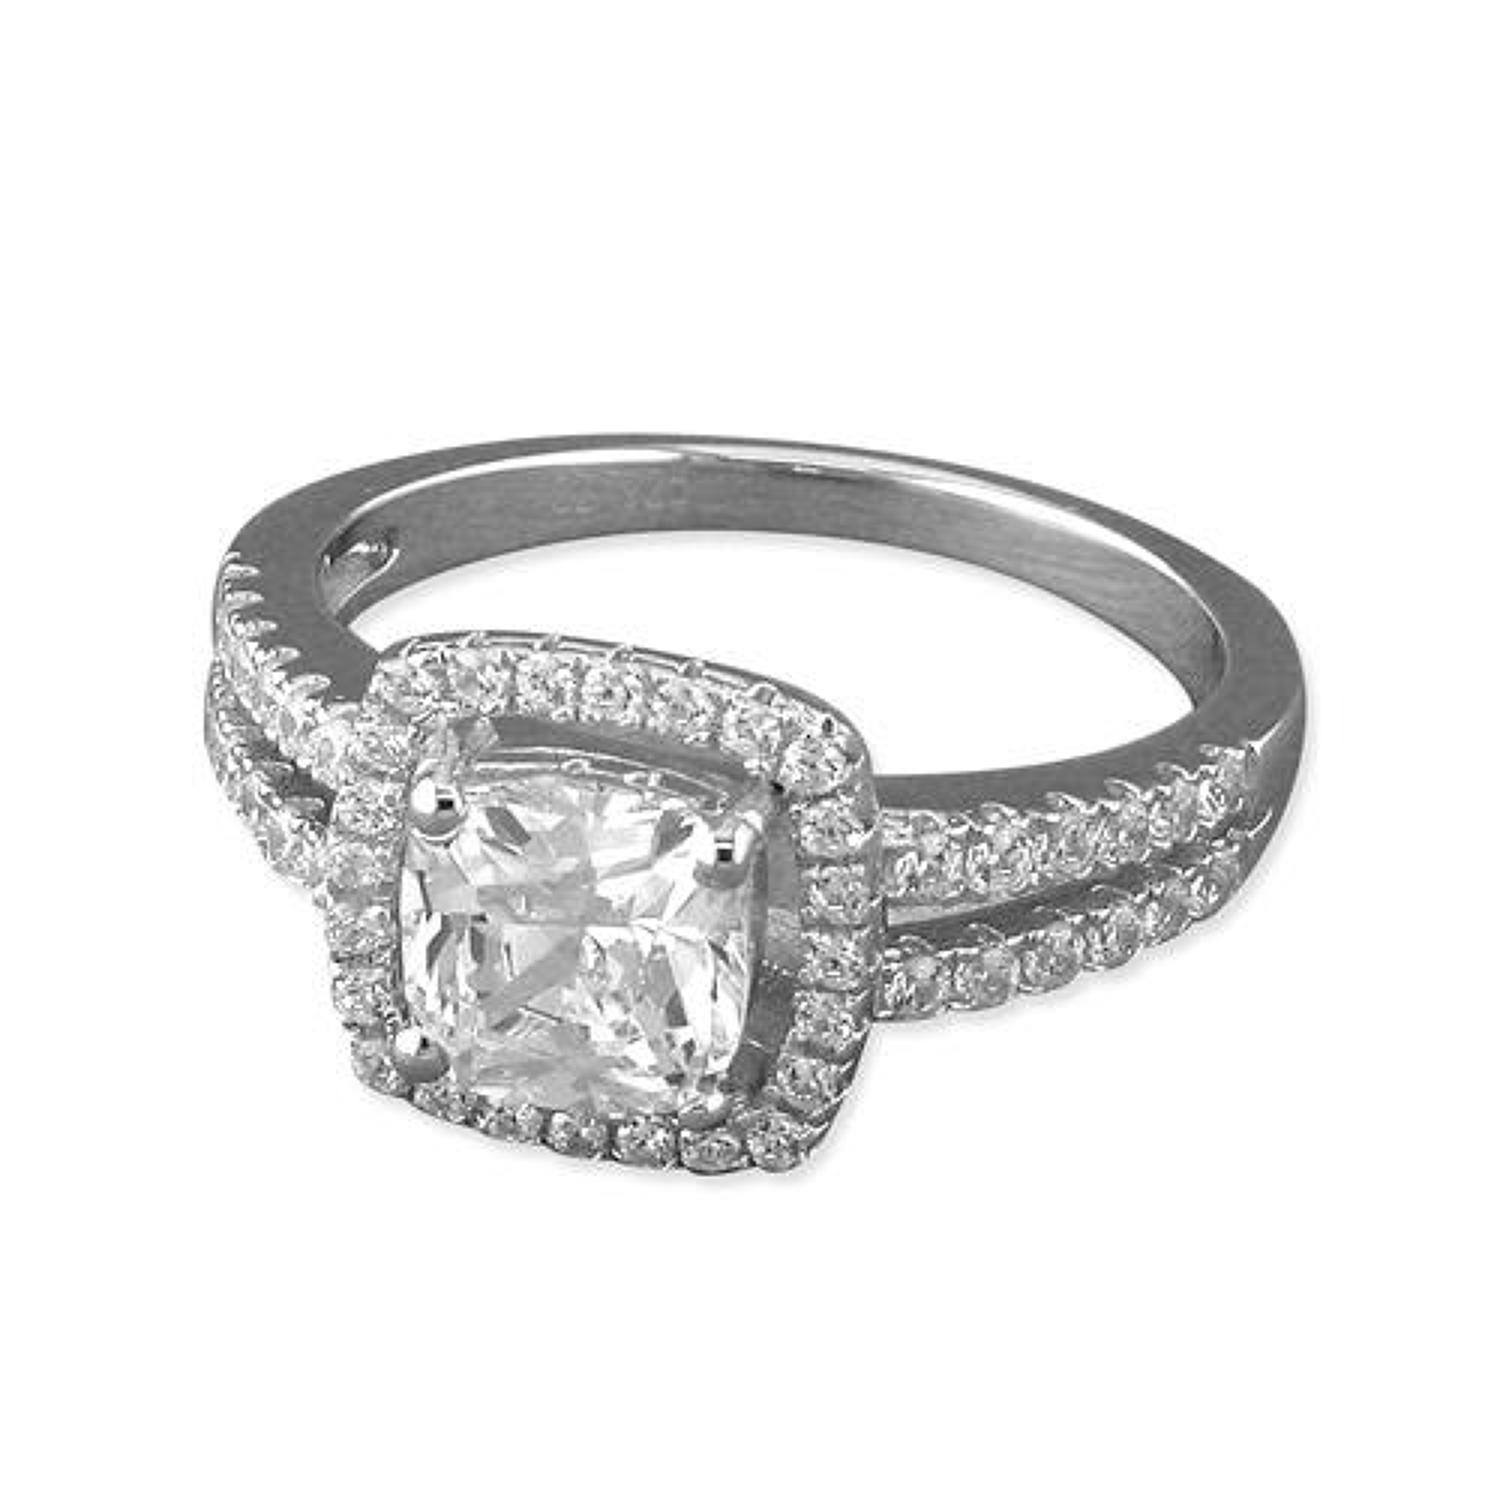 Sterling Silver Square Cubic Zirconia Cluster Ring